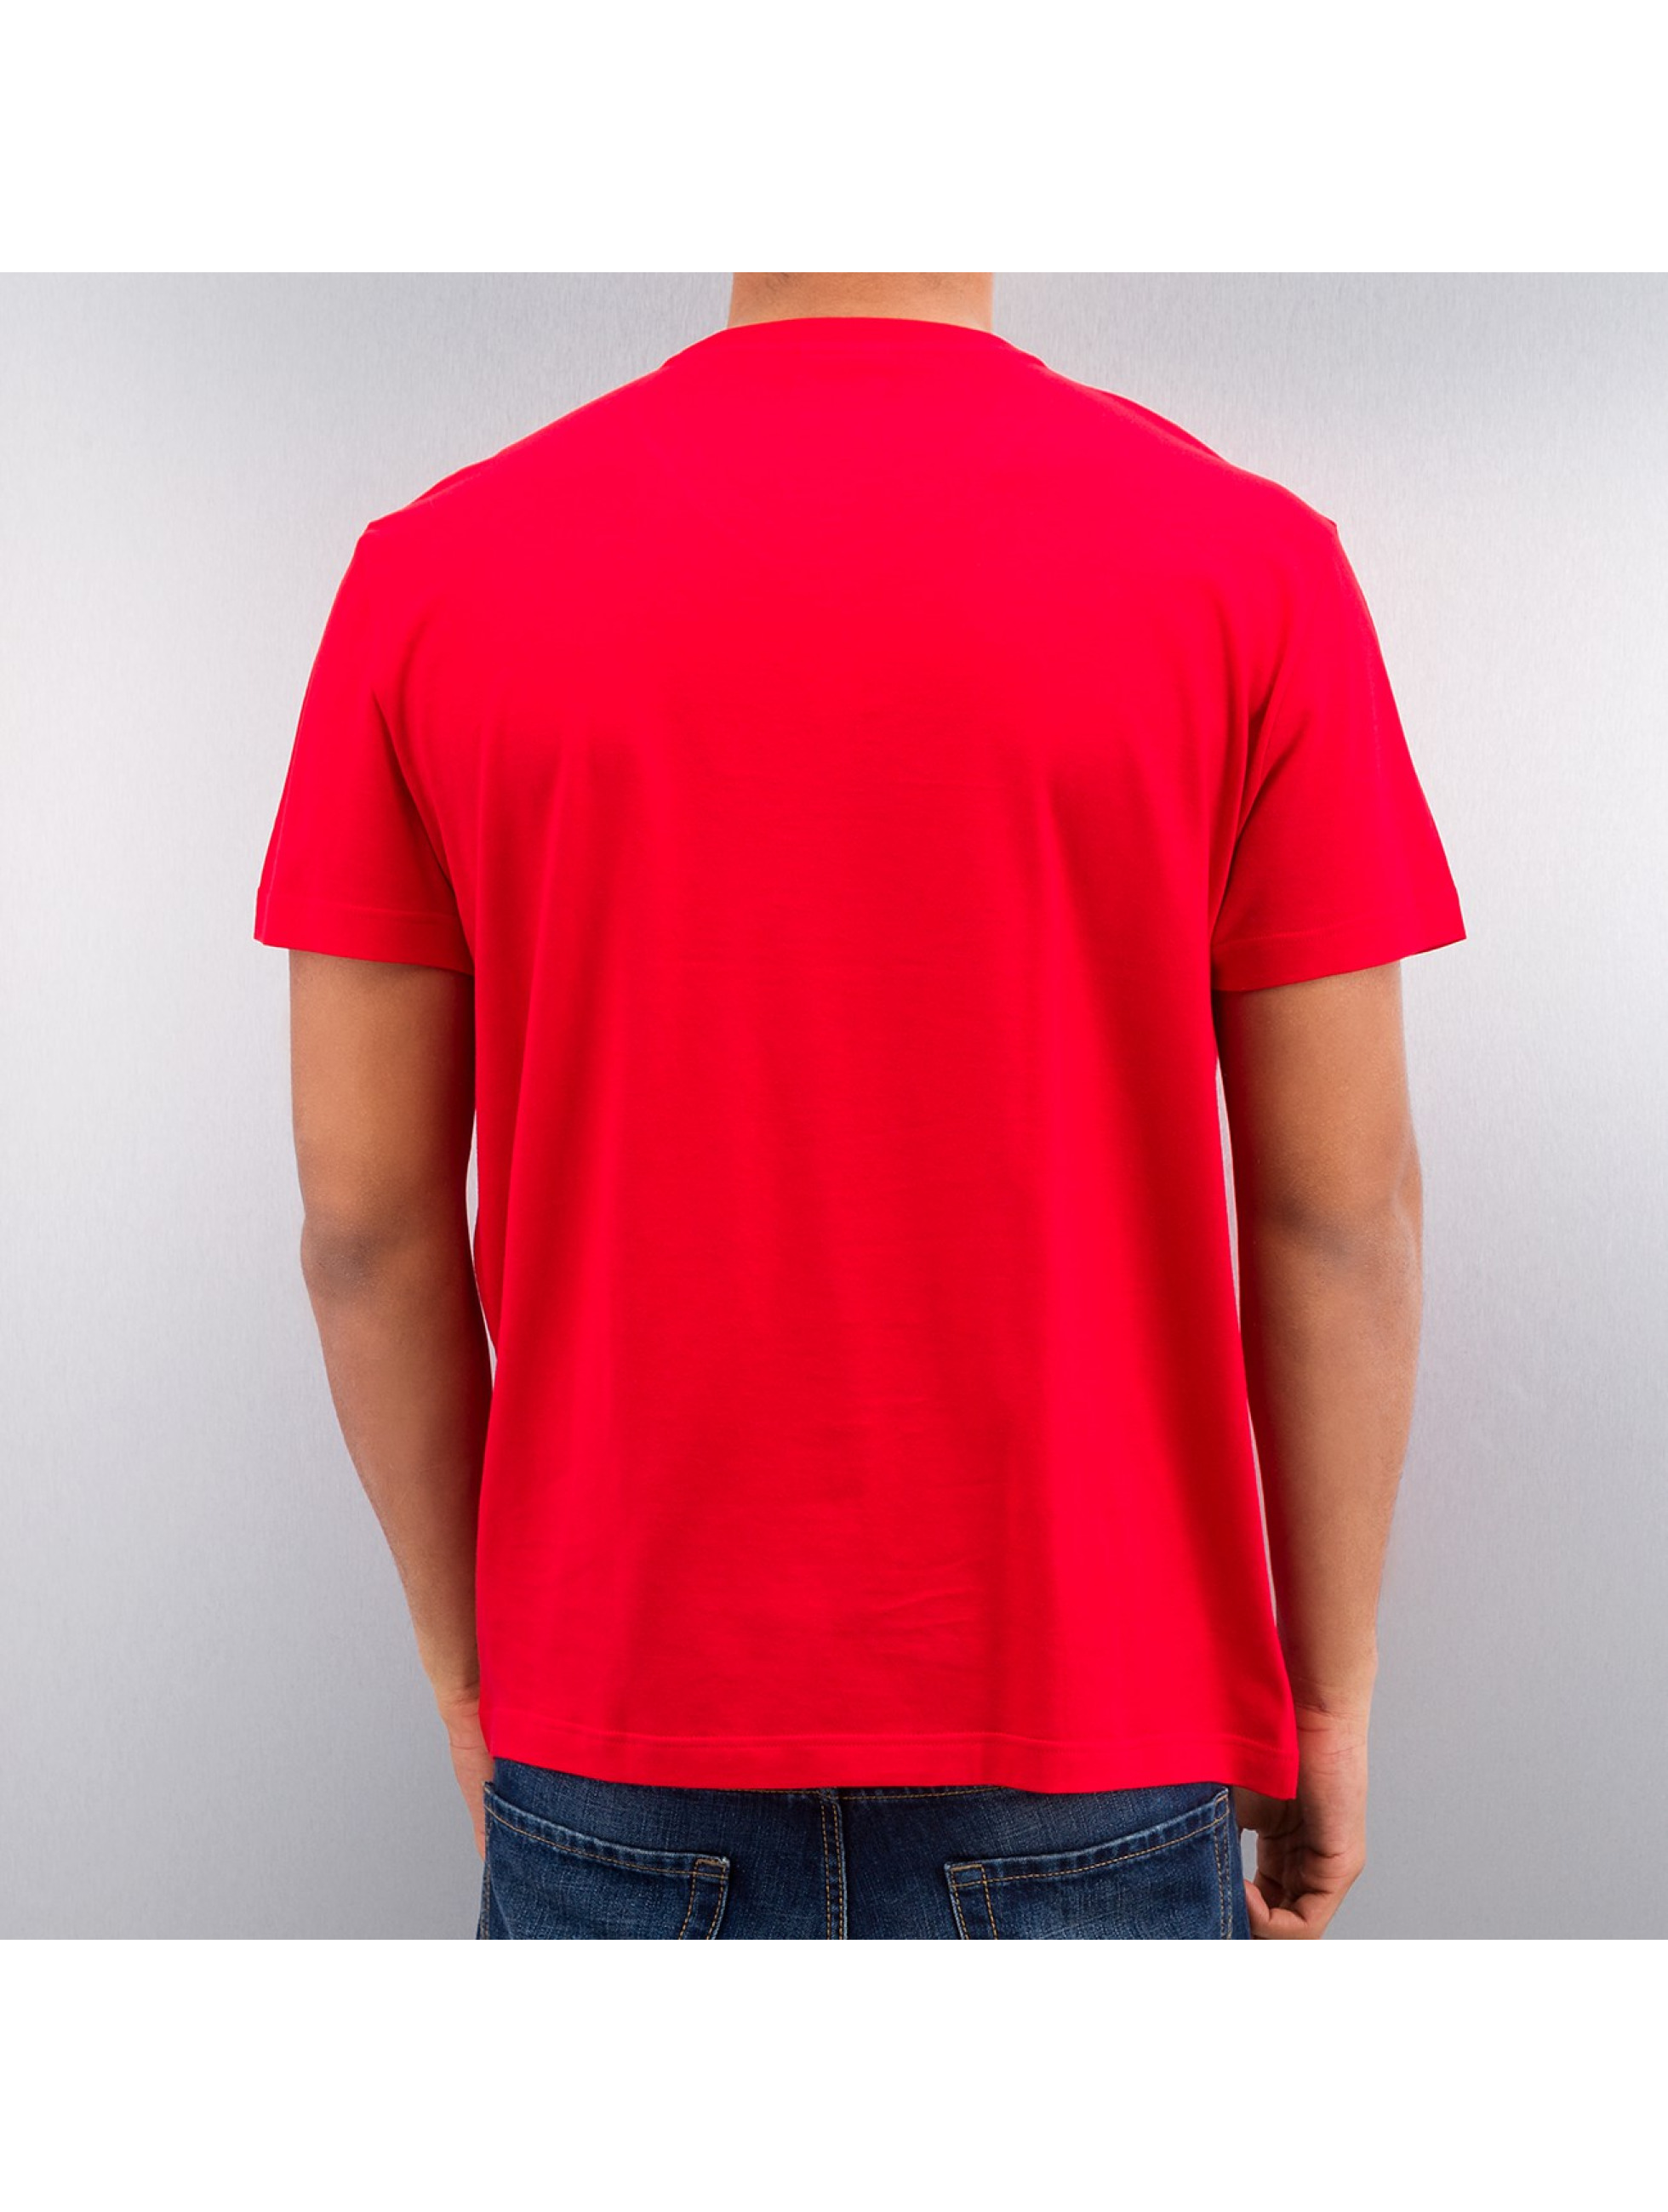 lacoste classic rouge homme t shirt 163977